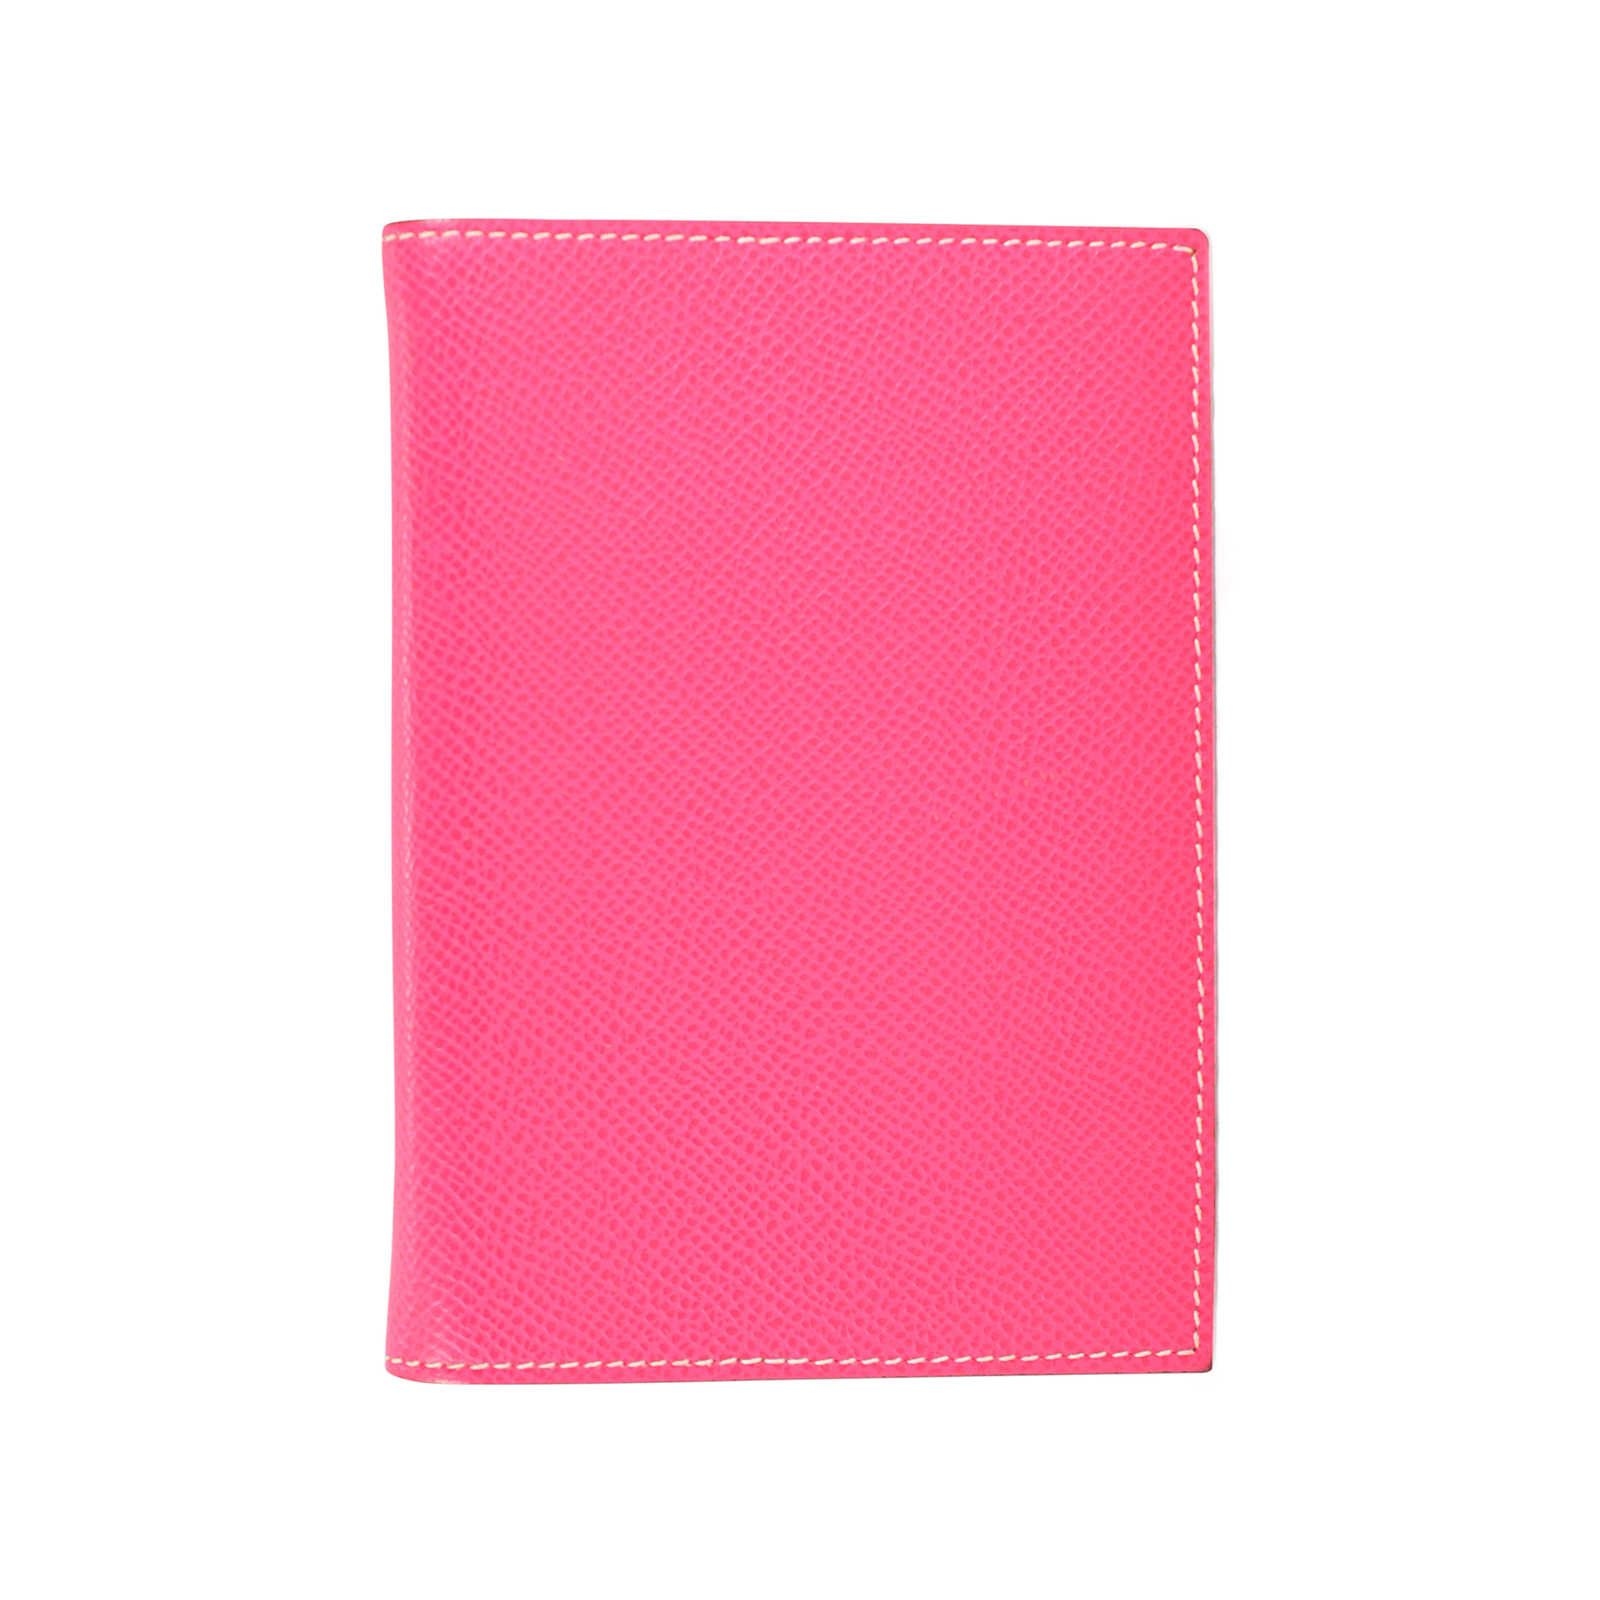 Hermès Grand Modele Agenda in Rose Tyrien crafted in Epsom calfskin leather, Interior is in the same leather in Burgundy Bordeaux and features two hooks for refill, front and back slip pockets. | Agenda measures: Length: 10cm x Height: 13.5cm | Comes with original box.